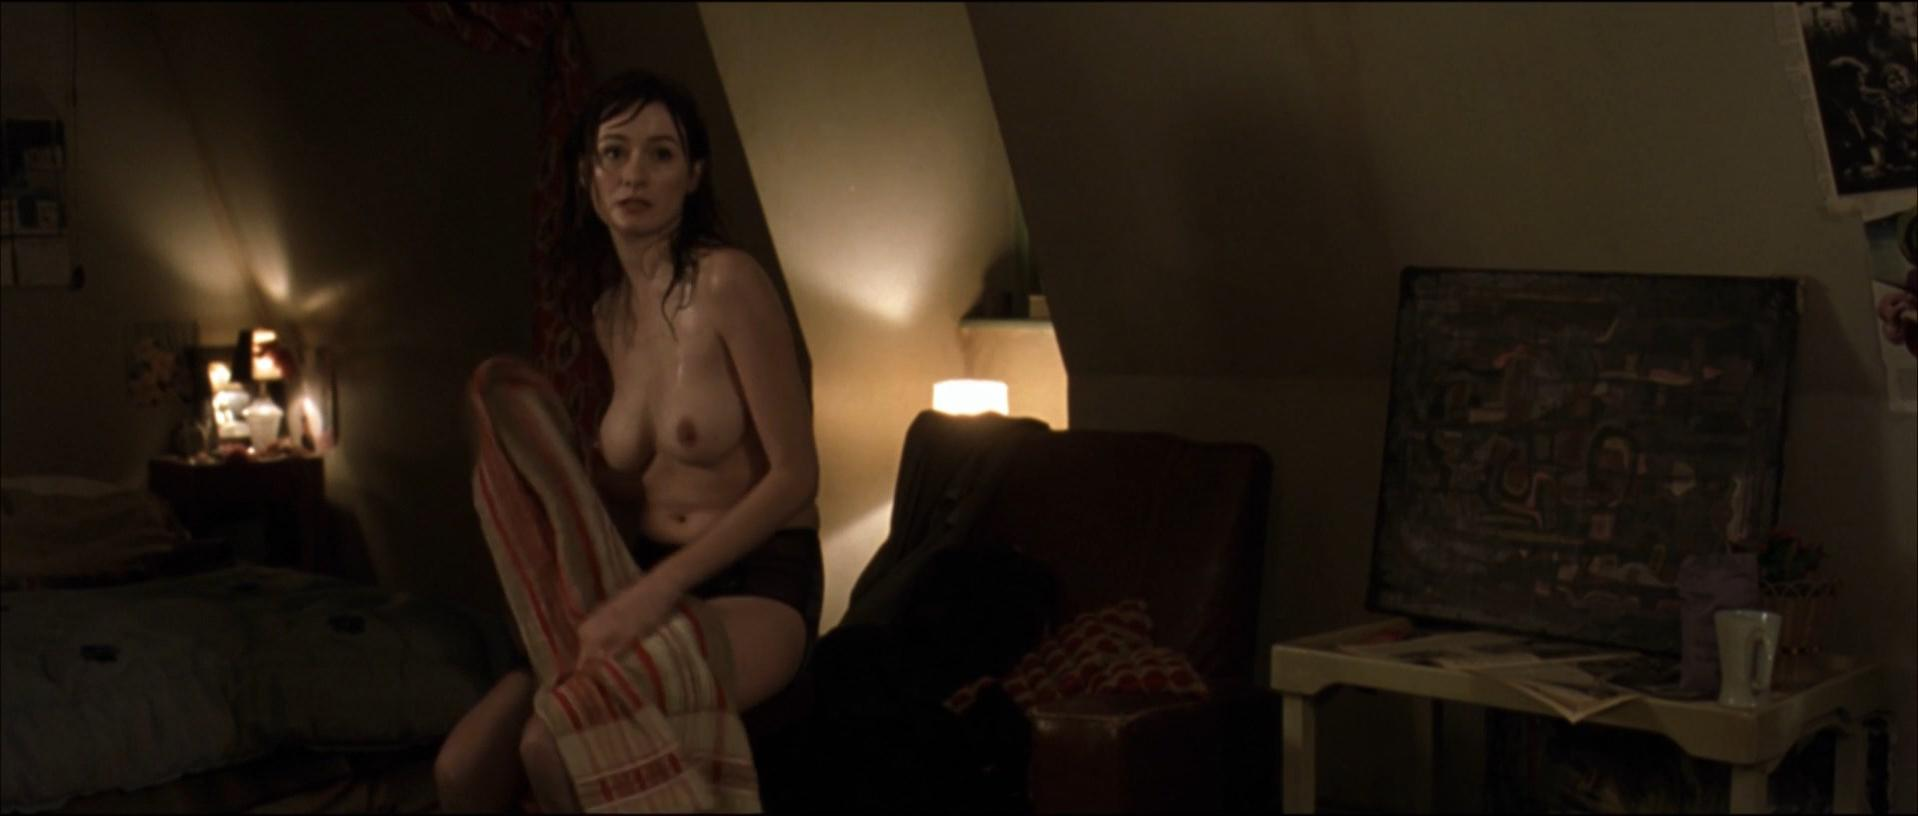 nude fuck emily mortimer